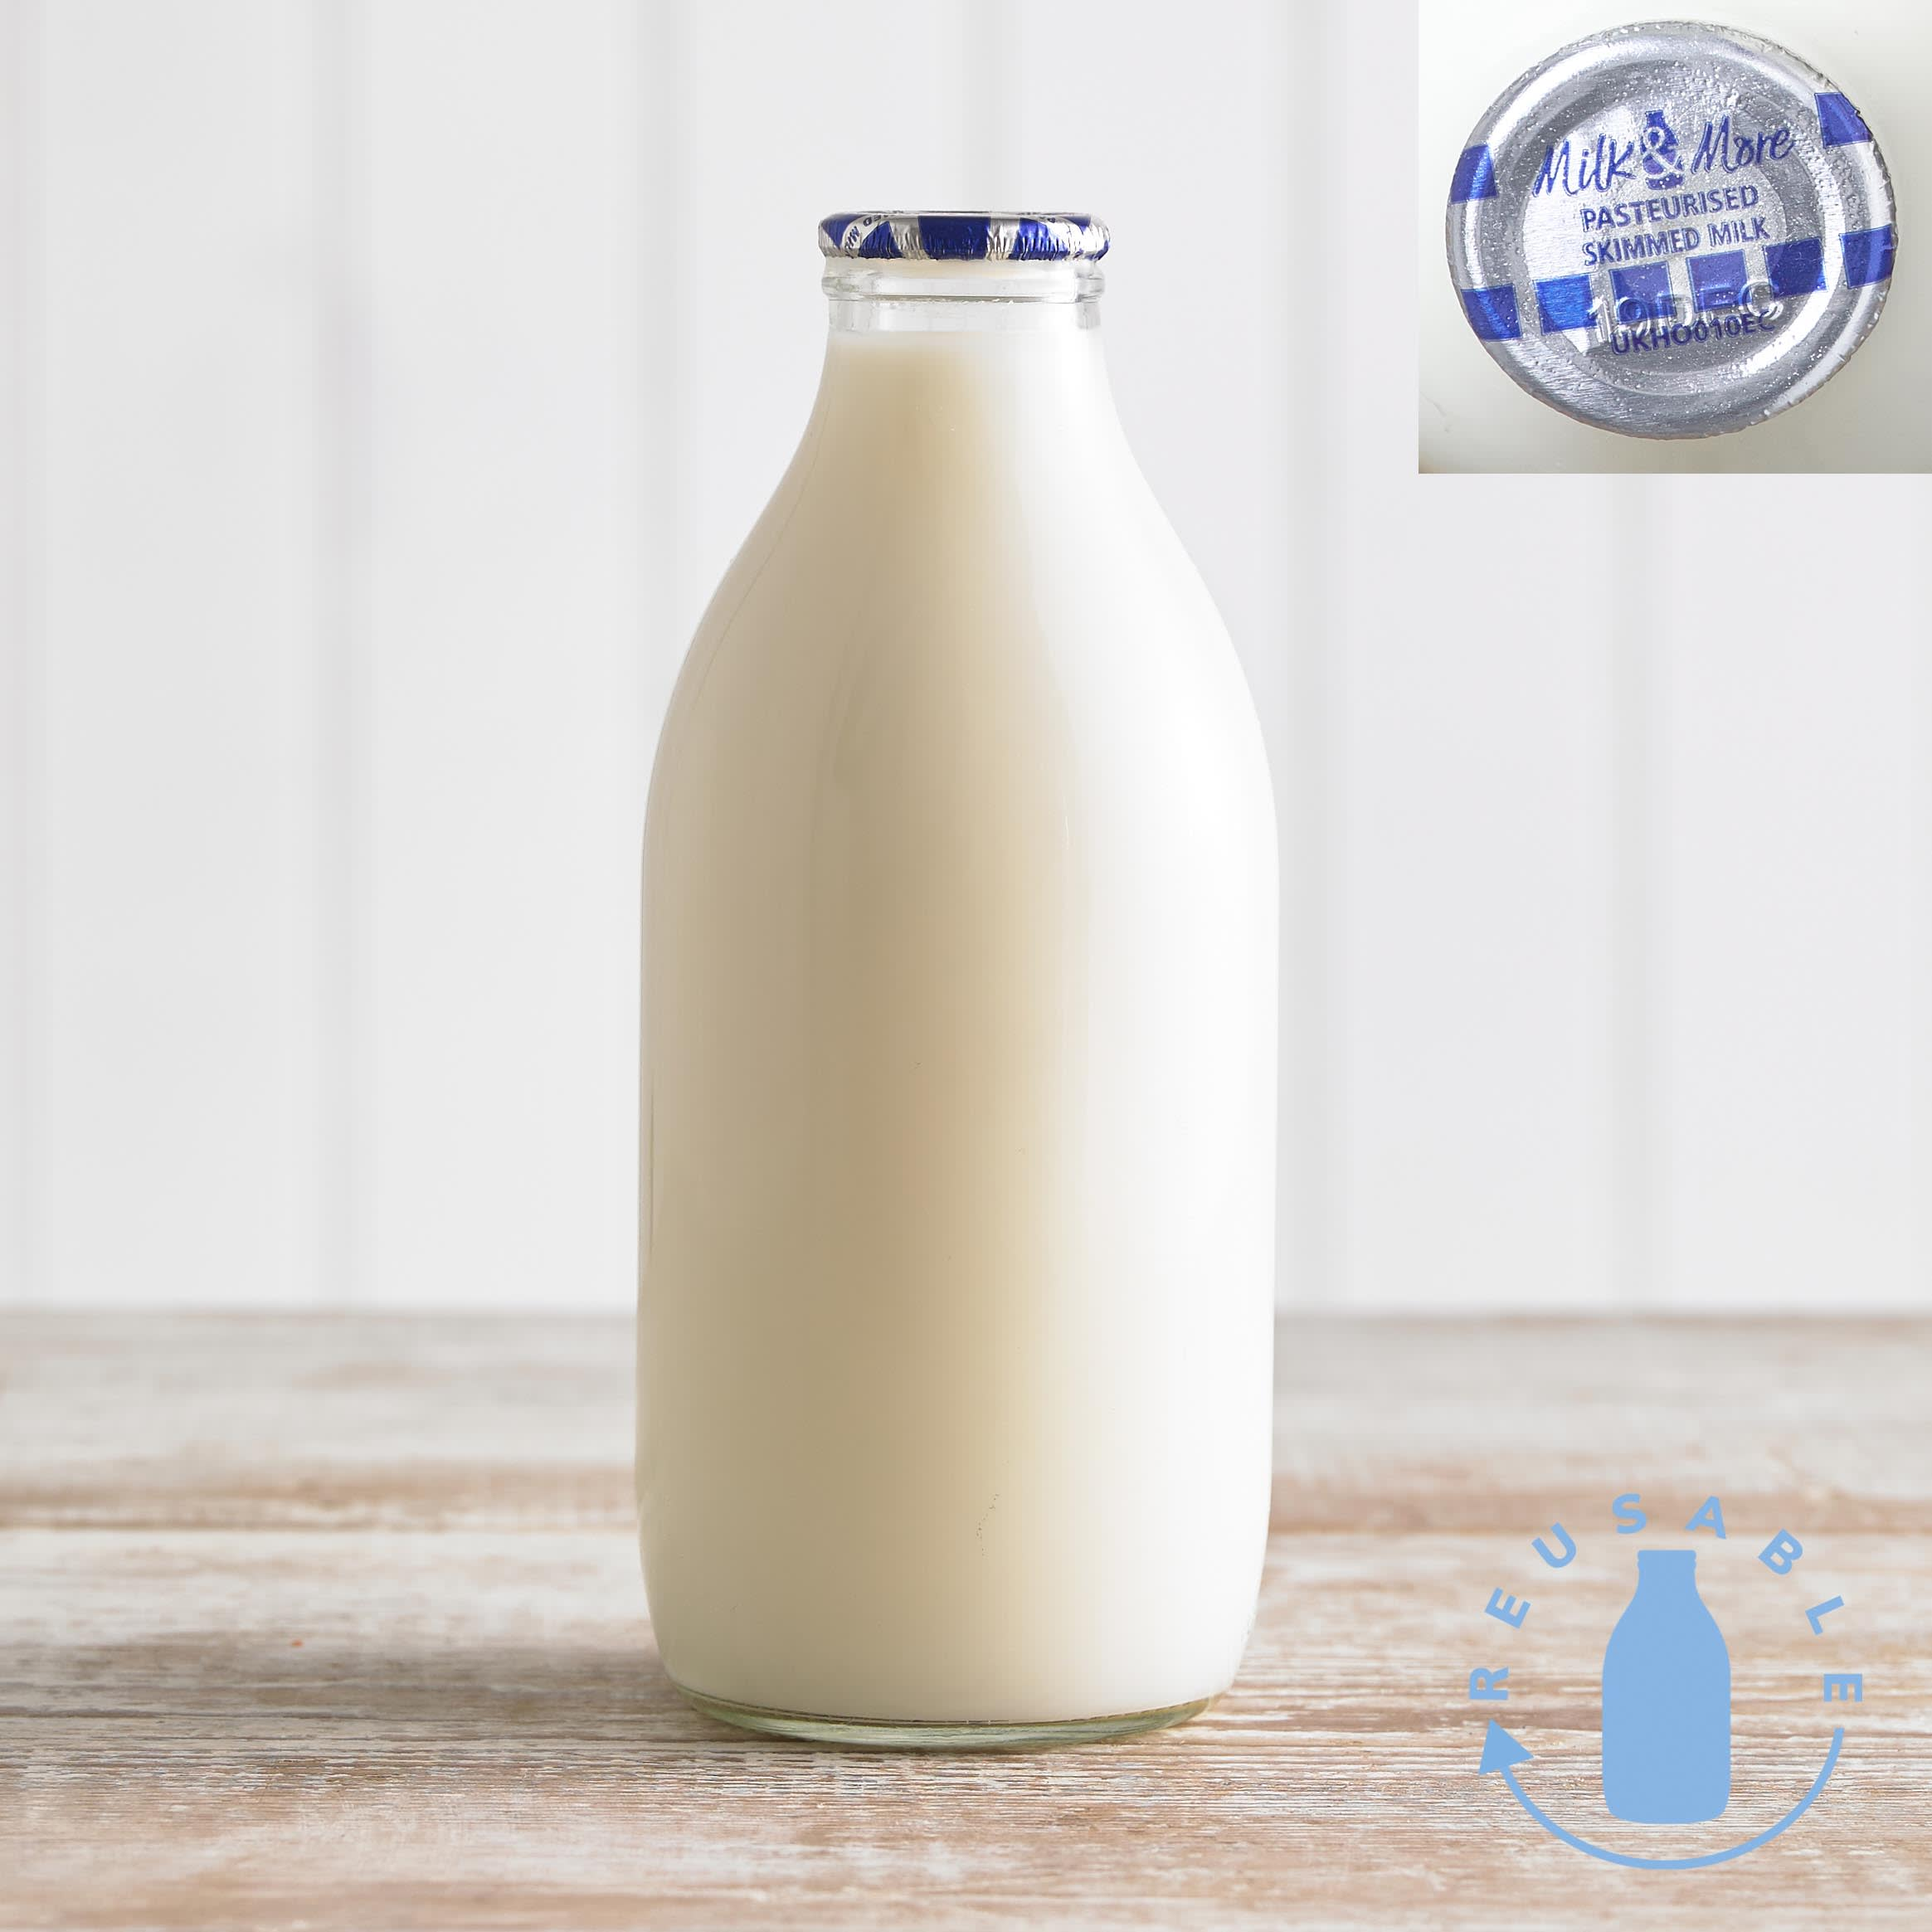 Milk & More Skimmed Milk in Glass, 568ml, 1pt